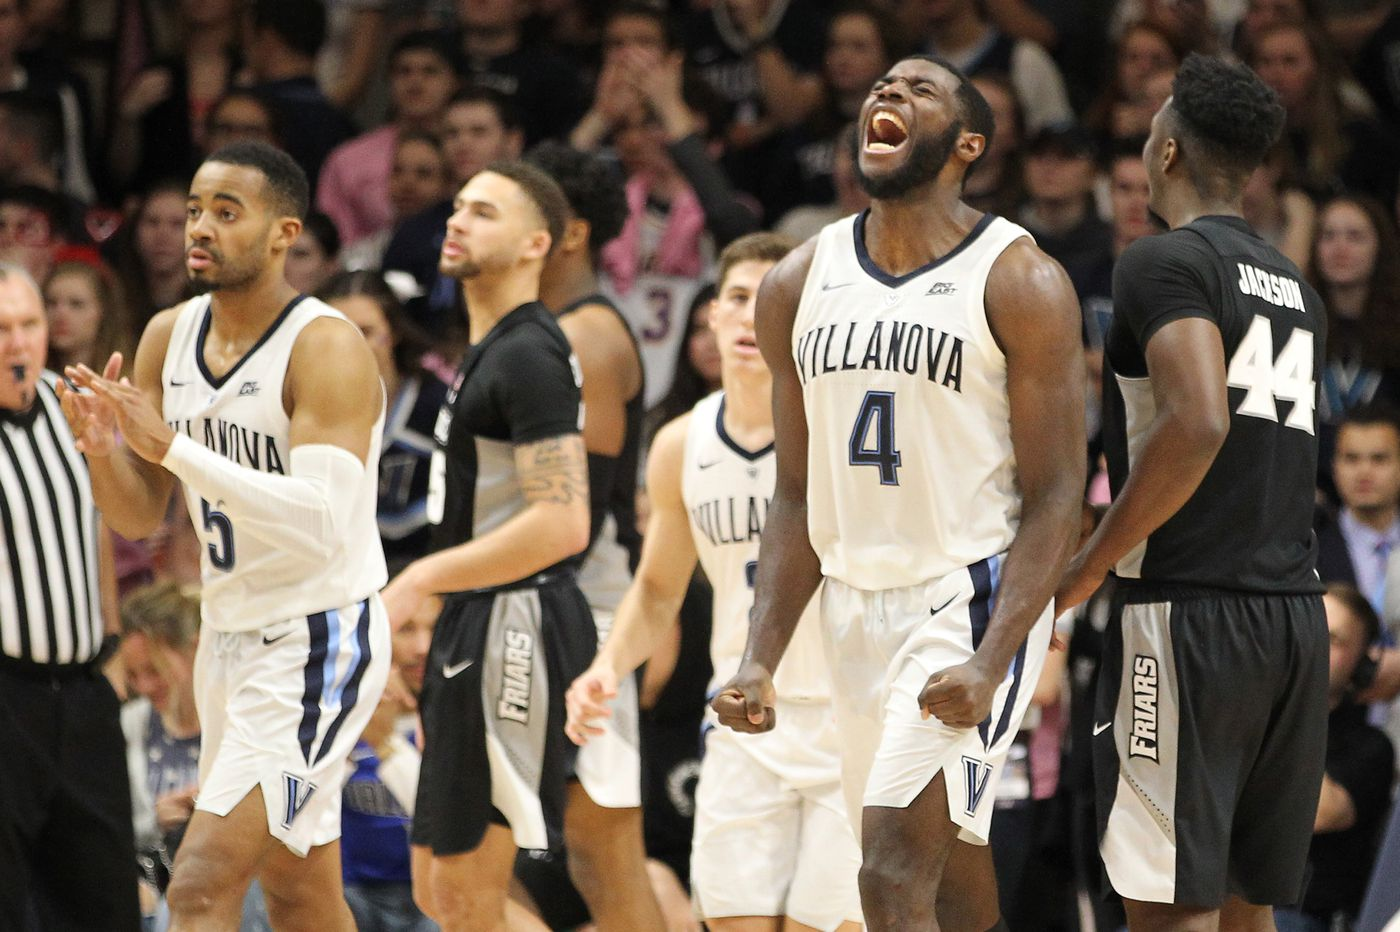 Eric Paschall sparks second-half surge, leads Villanova to 85-67 win over Providence